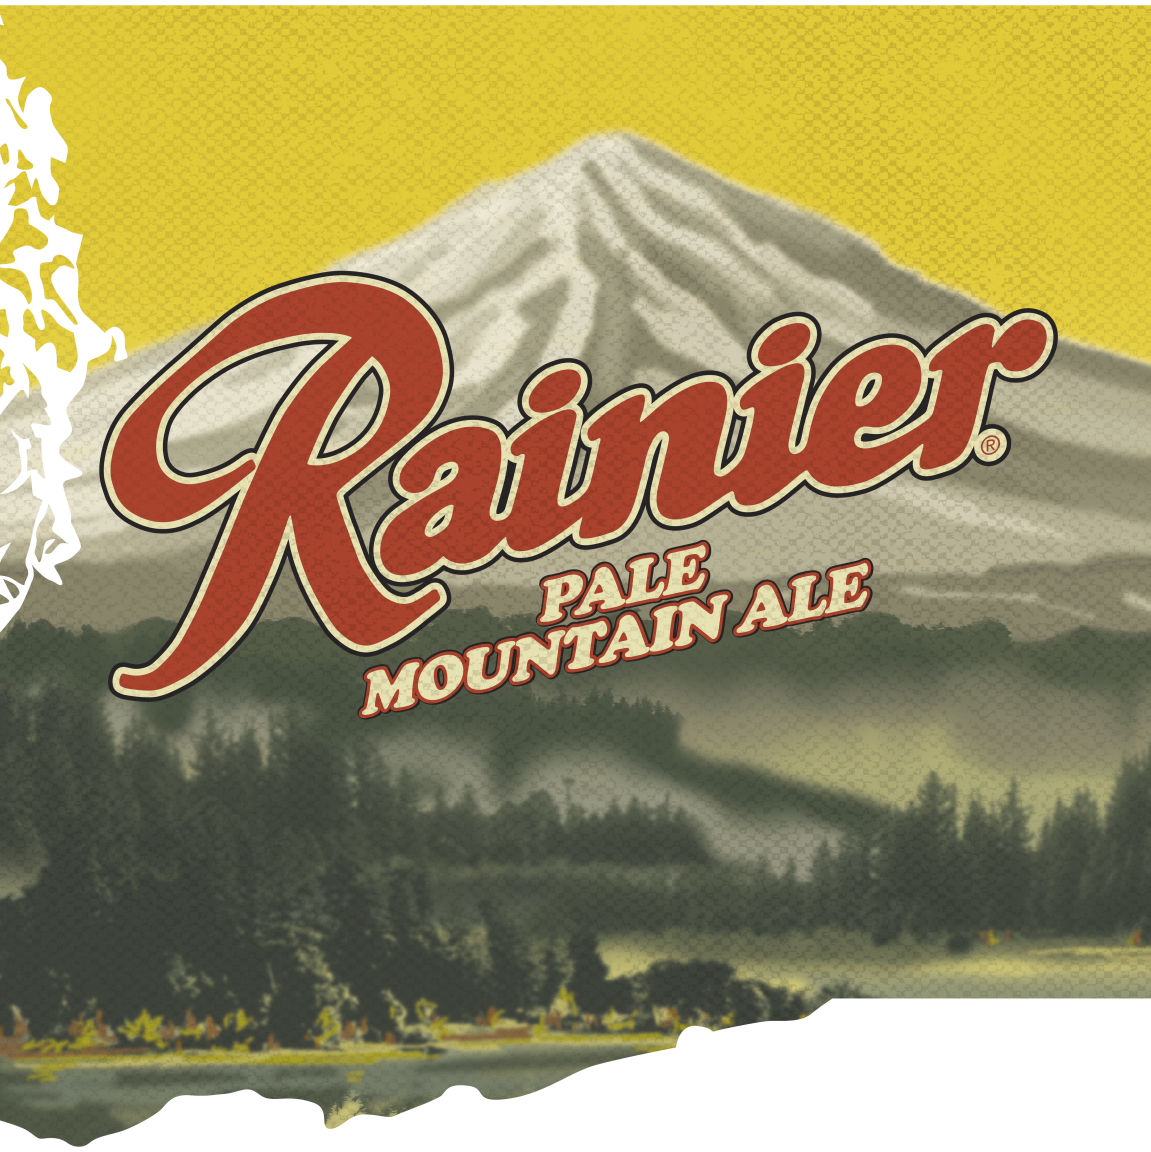 Rainier pale mountain ale   wa logo kstksi